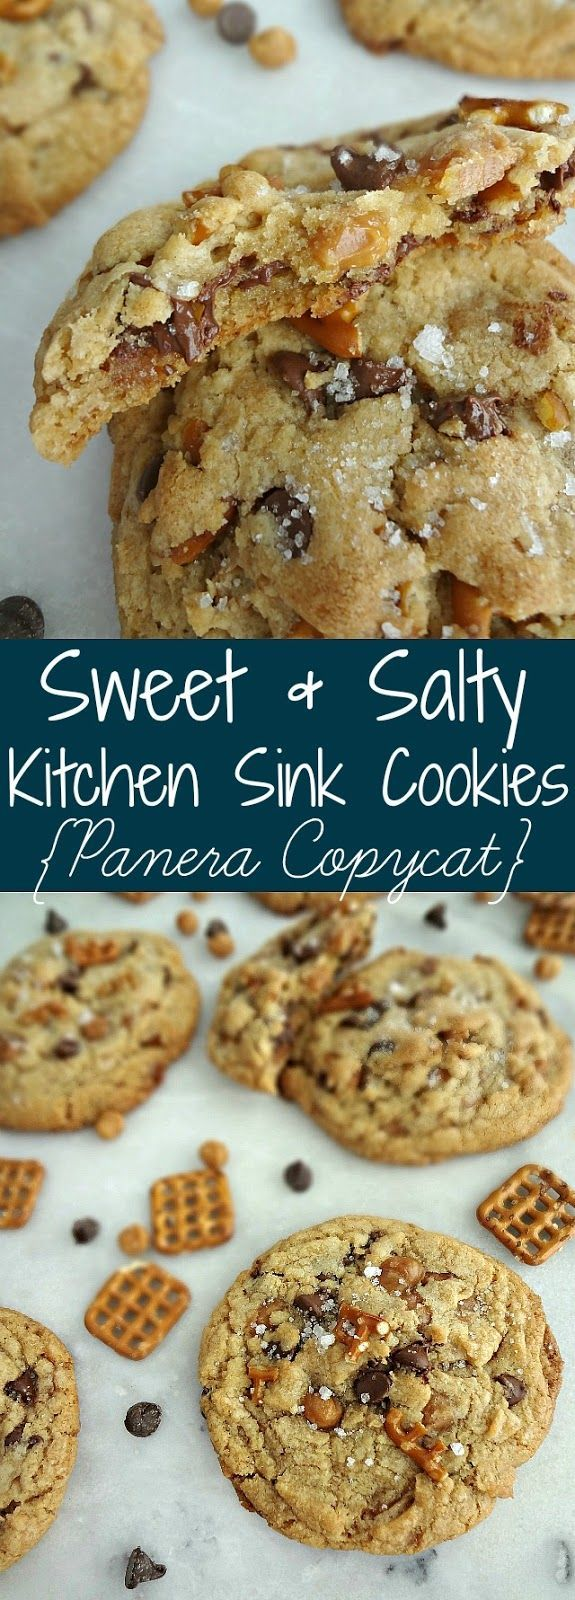 Sweet & Salty Kitchen Sink Cookies {Panera Copycat}        Sweet & Salty Kitchen Sink Cookies {Panera Copycat},Clone Recipes  Sweet & Salty Kitchen Sink Cookies {Panera Copycat}-a recipe for giant, chewy, cookies with pretzels, caramel bits, and chocolate chips. SO GOOD!     #Baking recipes #Cake recipes #Cheesecake recipes #Cookie recipes #Cookies #Copycat #Desserts #Easy dessert recipes #Kitchen #Panera #Salty #Sink #sweet